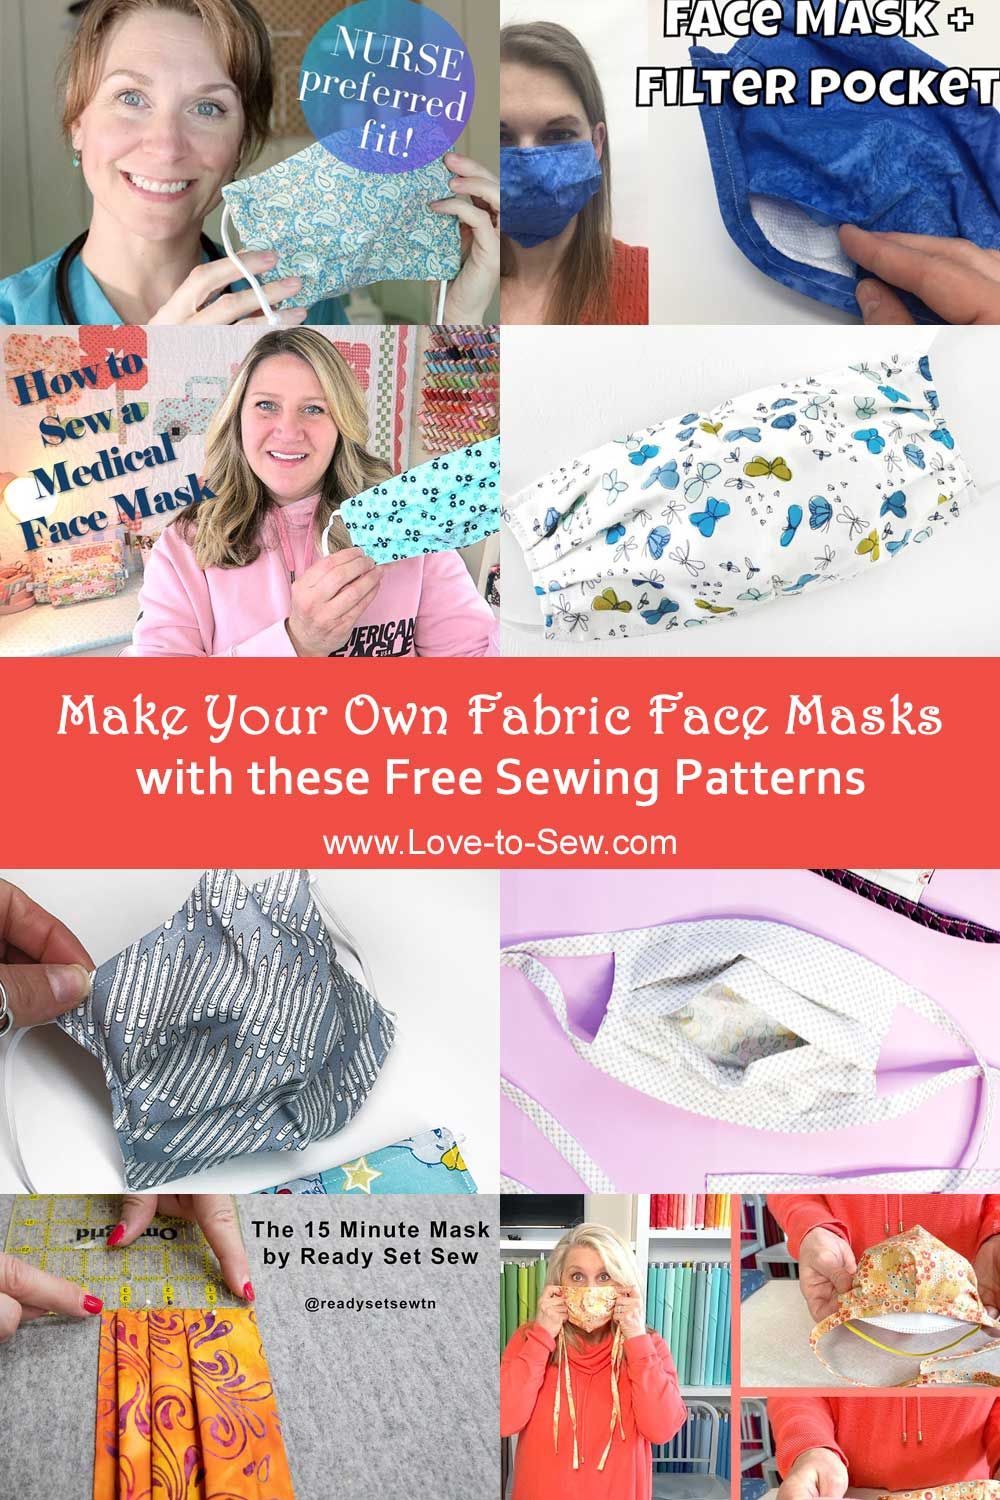 Make Your Own Fabric Face Masks with these Free Sewing Patterns